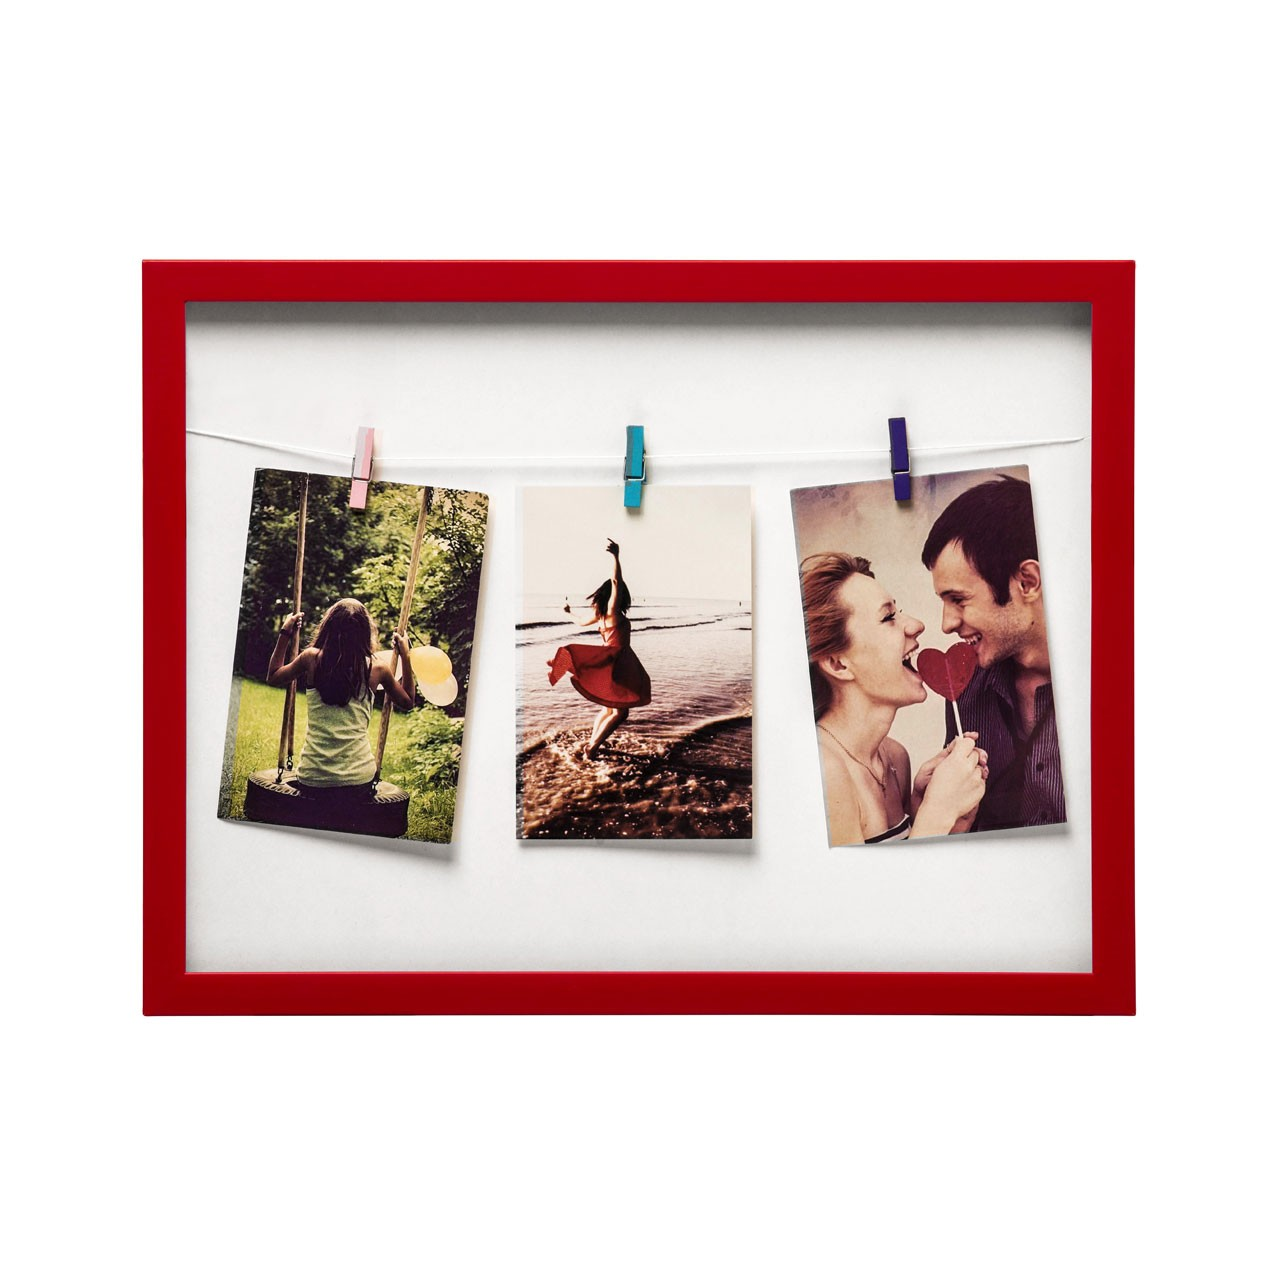 Prime Furnishing 3 Peg Washing Line Plastic Photo Frame - Red